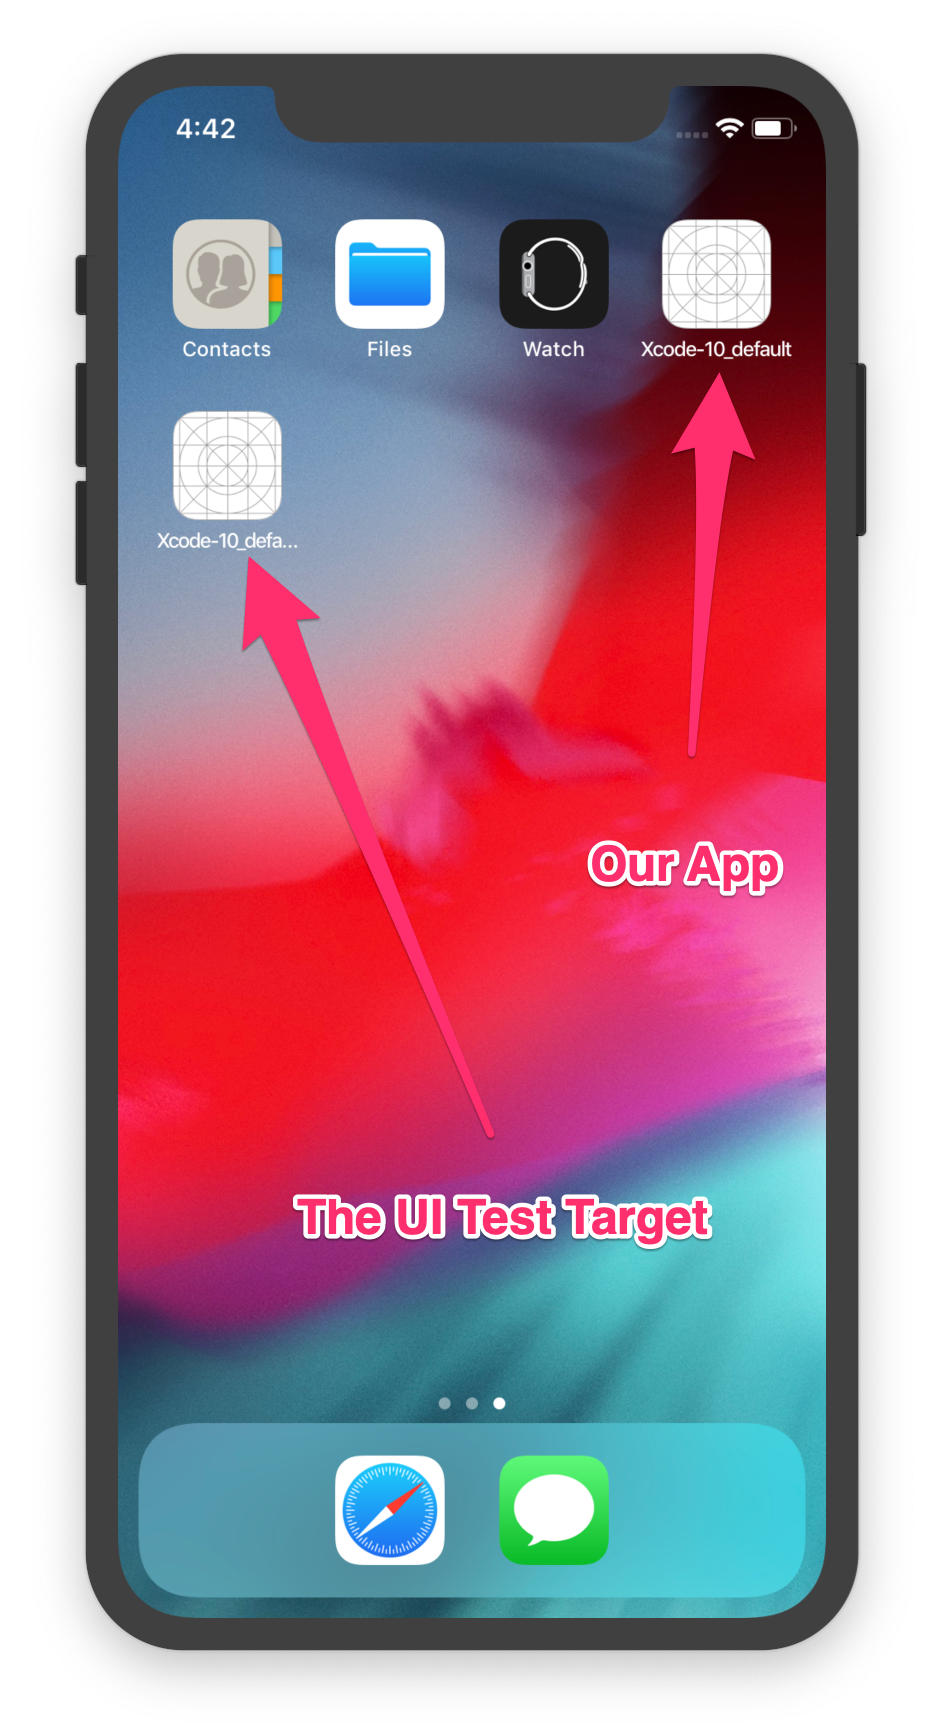 Automate iOS codesigning for real device UI testing with